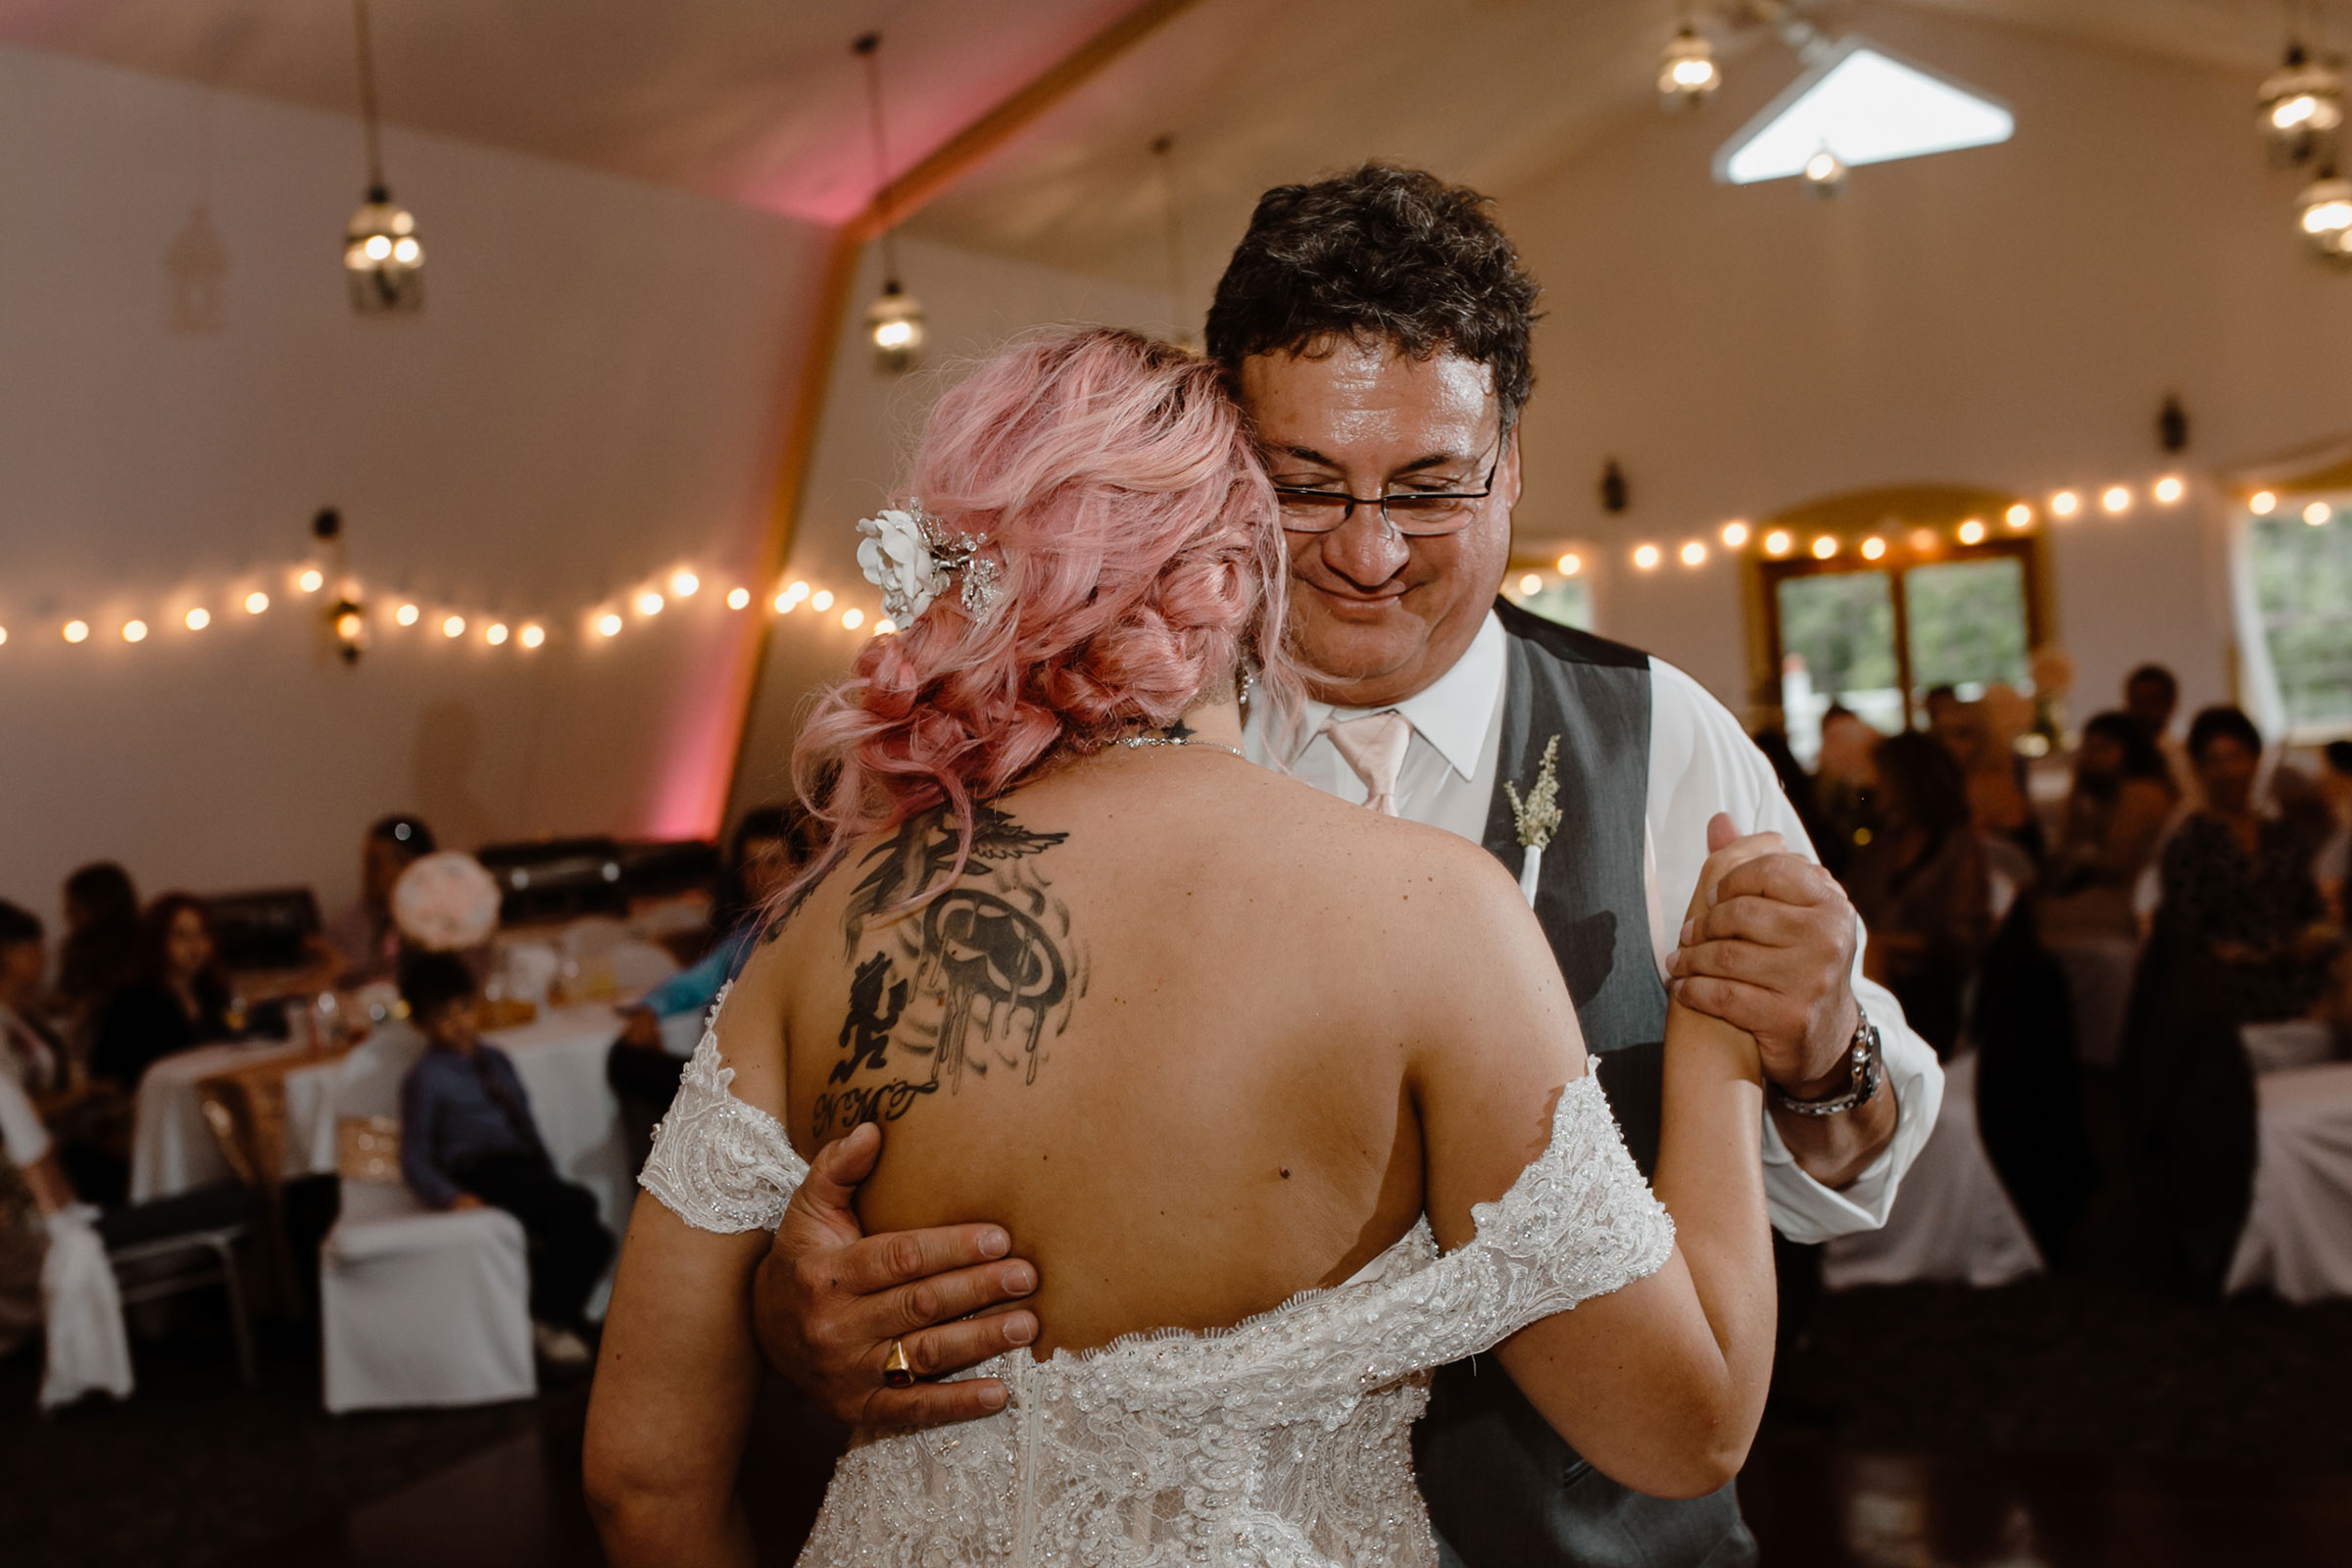 up-close-shot-of-father-dancing-with-bride-wedding-summerset-winery-indianola-iowa-raelyn-ramey-photography.jpg